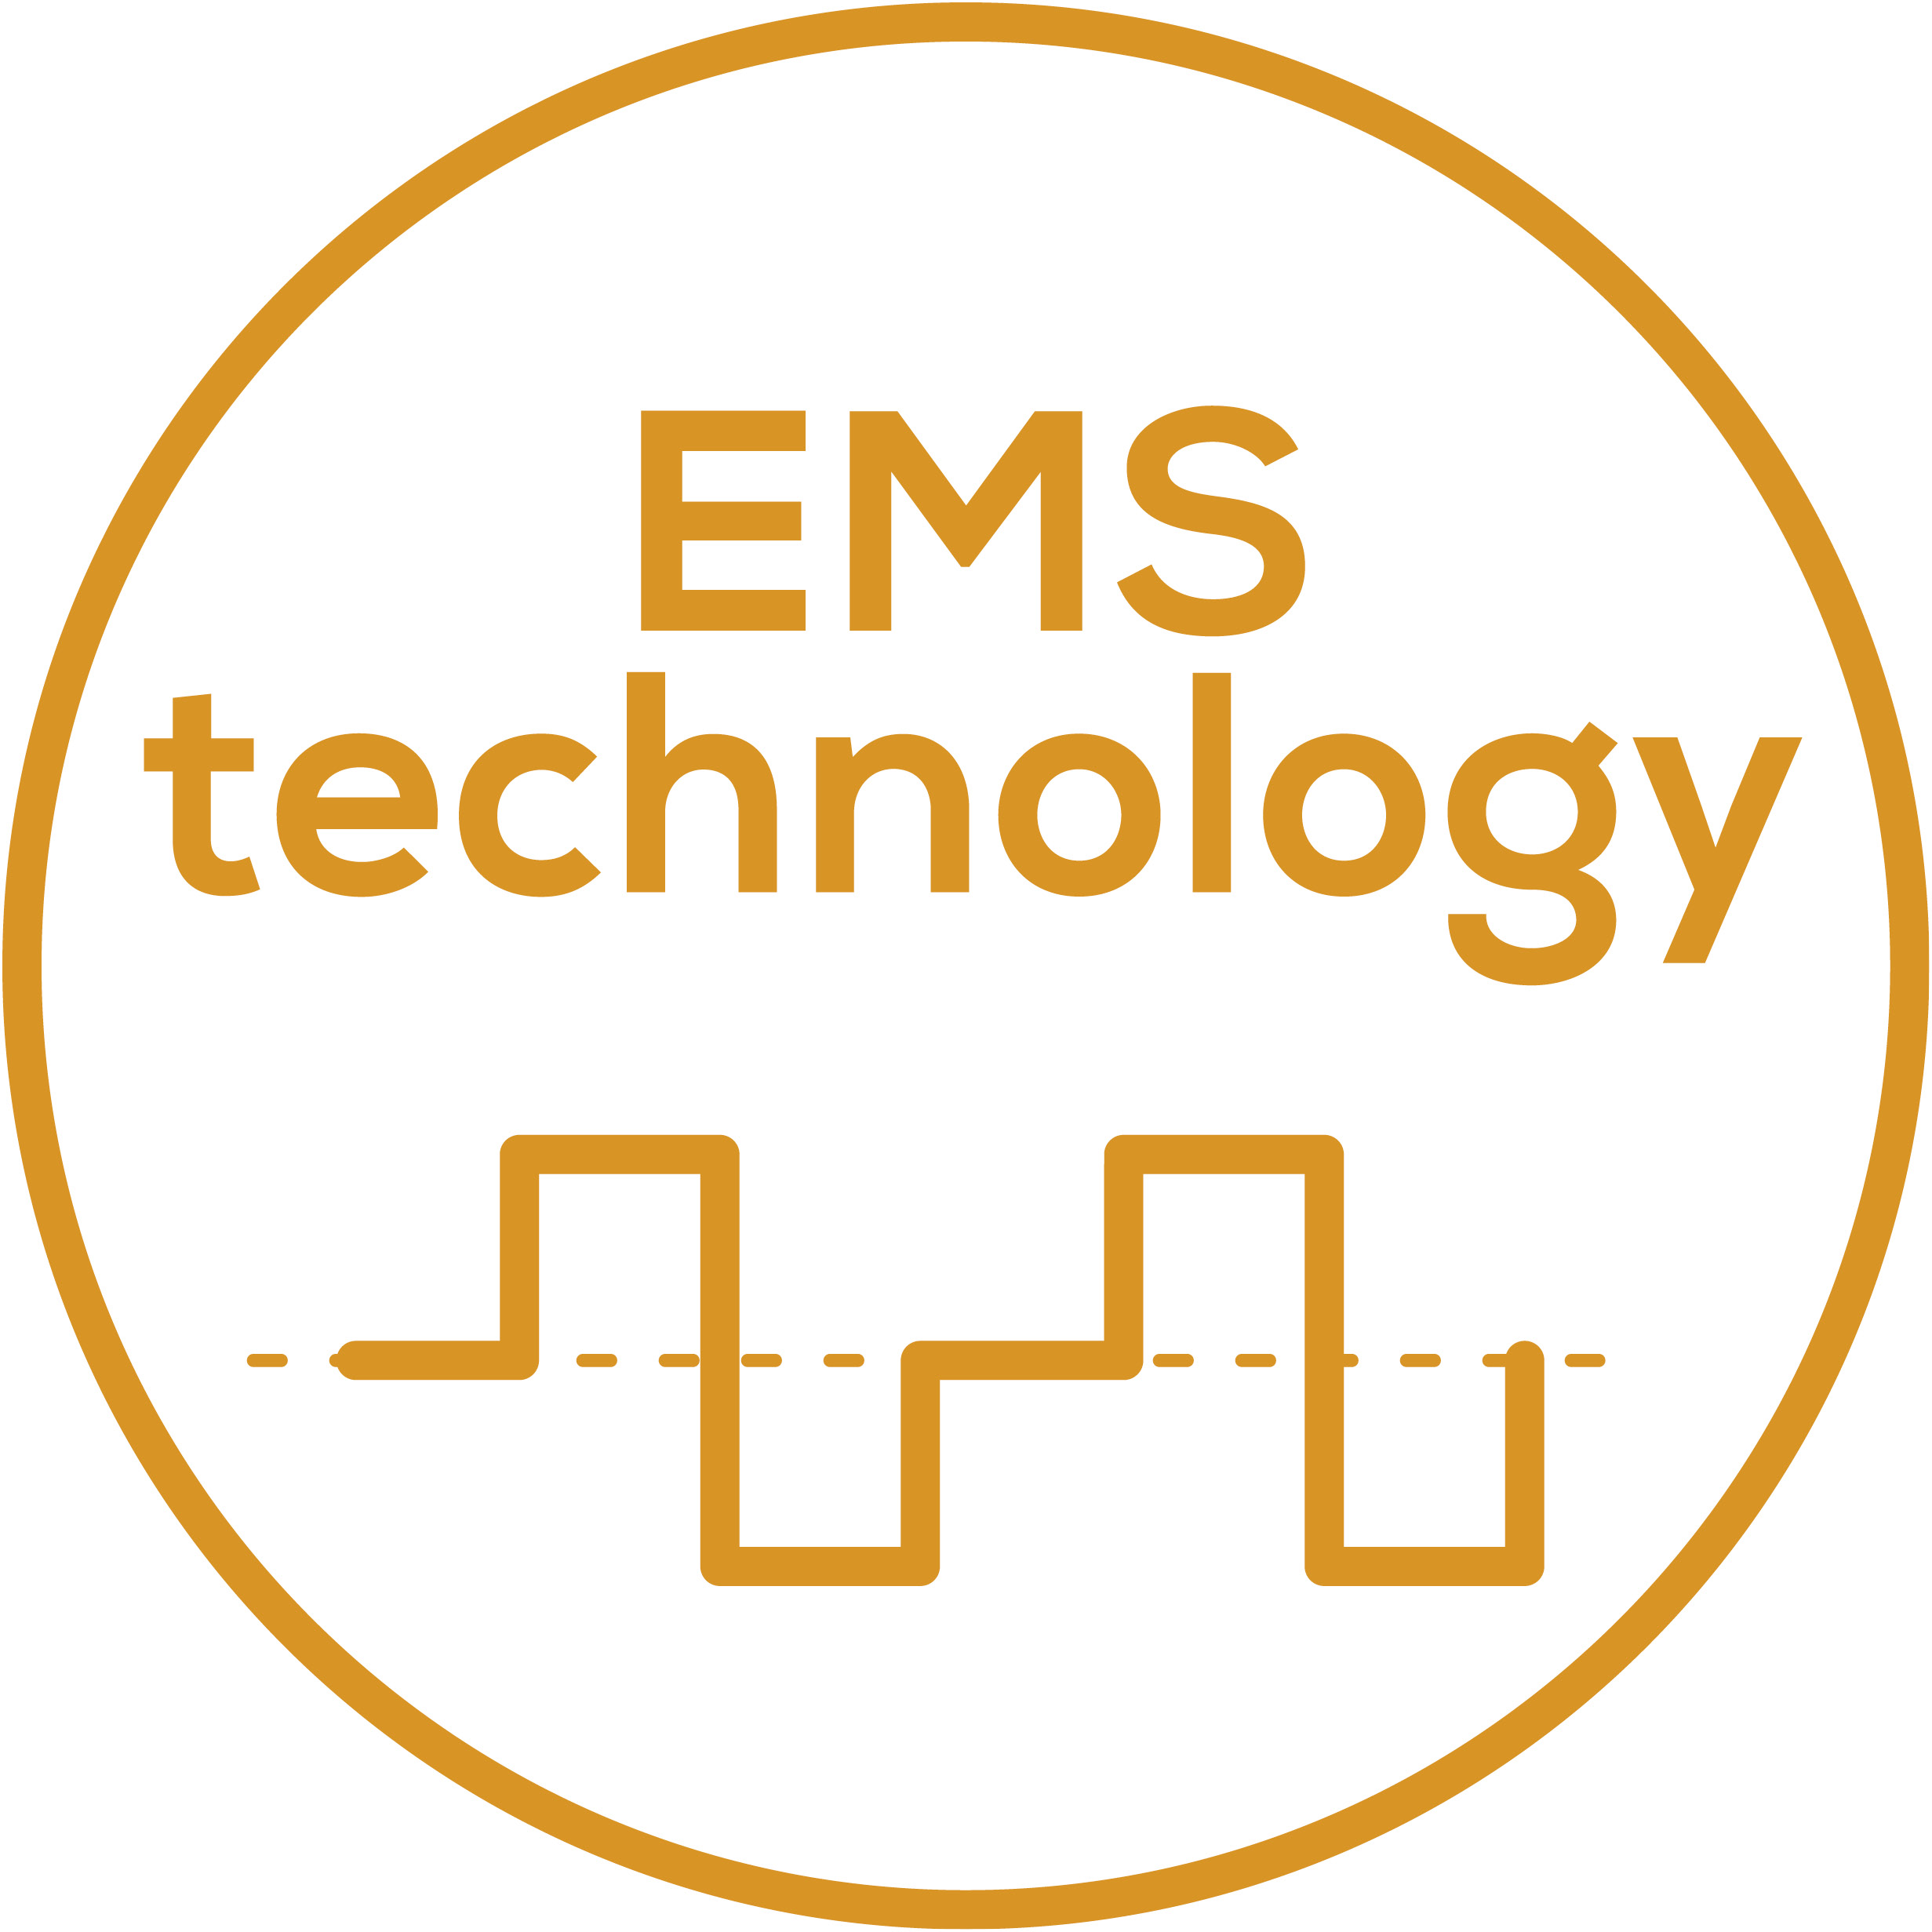 EMS technology Electrical muscle stimulation for muscle training and regeneration